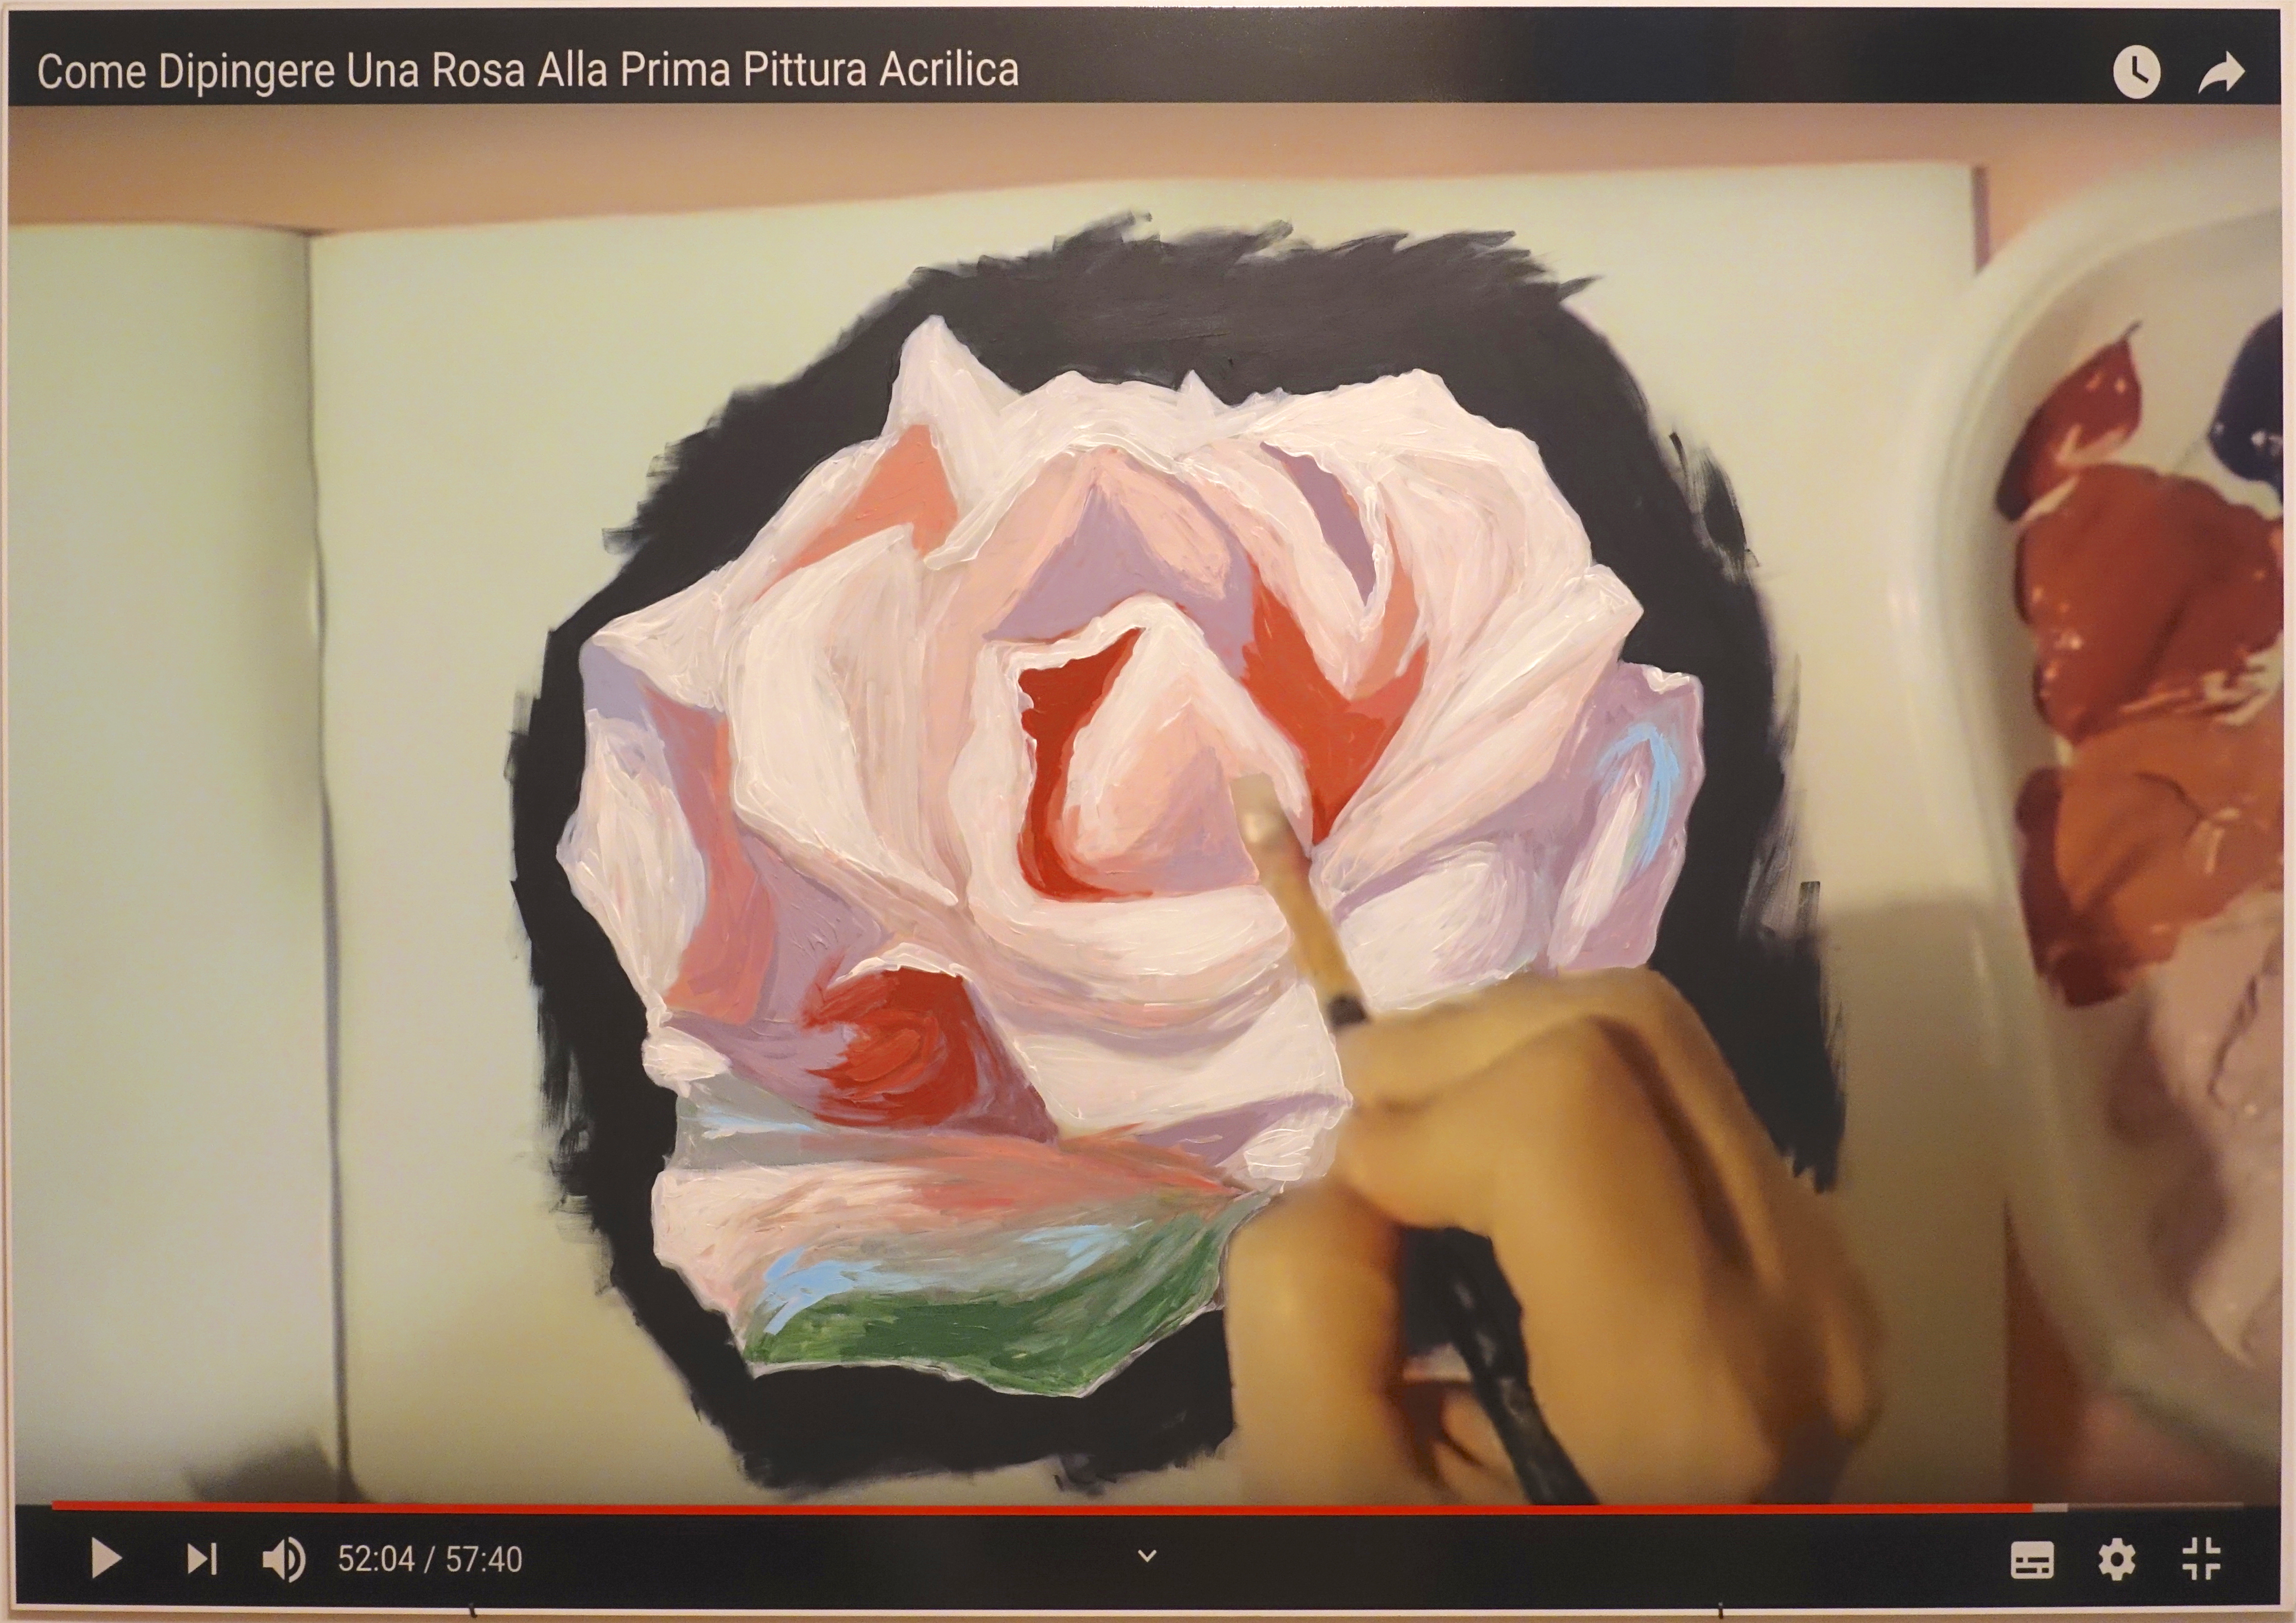 Giuseppina Giordano, www.youtube.com/watch?v=dXkEED6hIkY (How to paint a rose, tutorial 1), 2019acrylic paint on printed pvc / 100x140x1cm